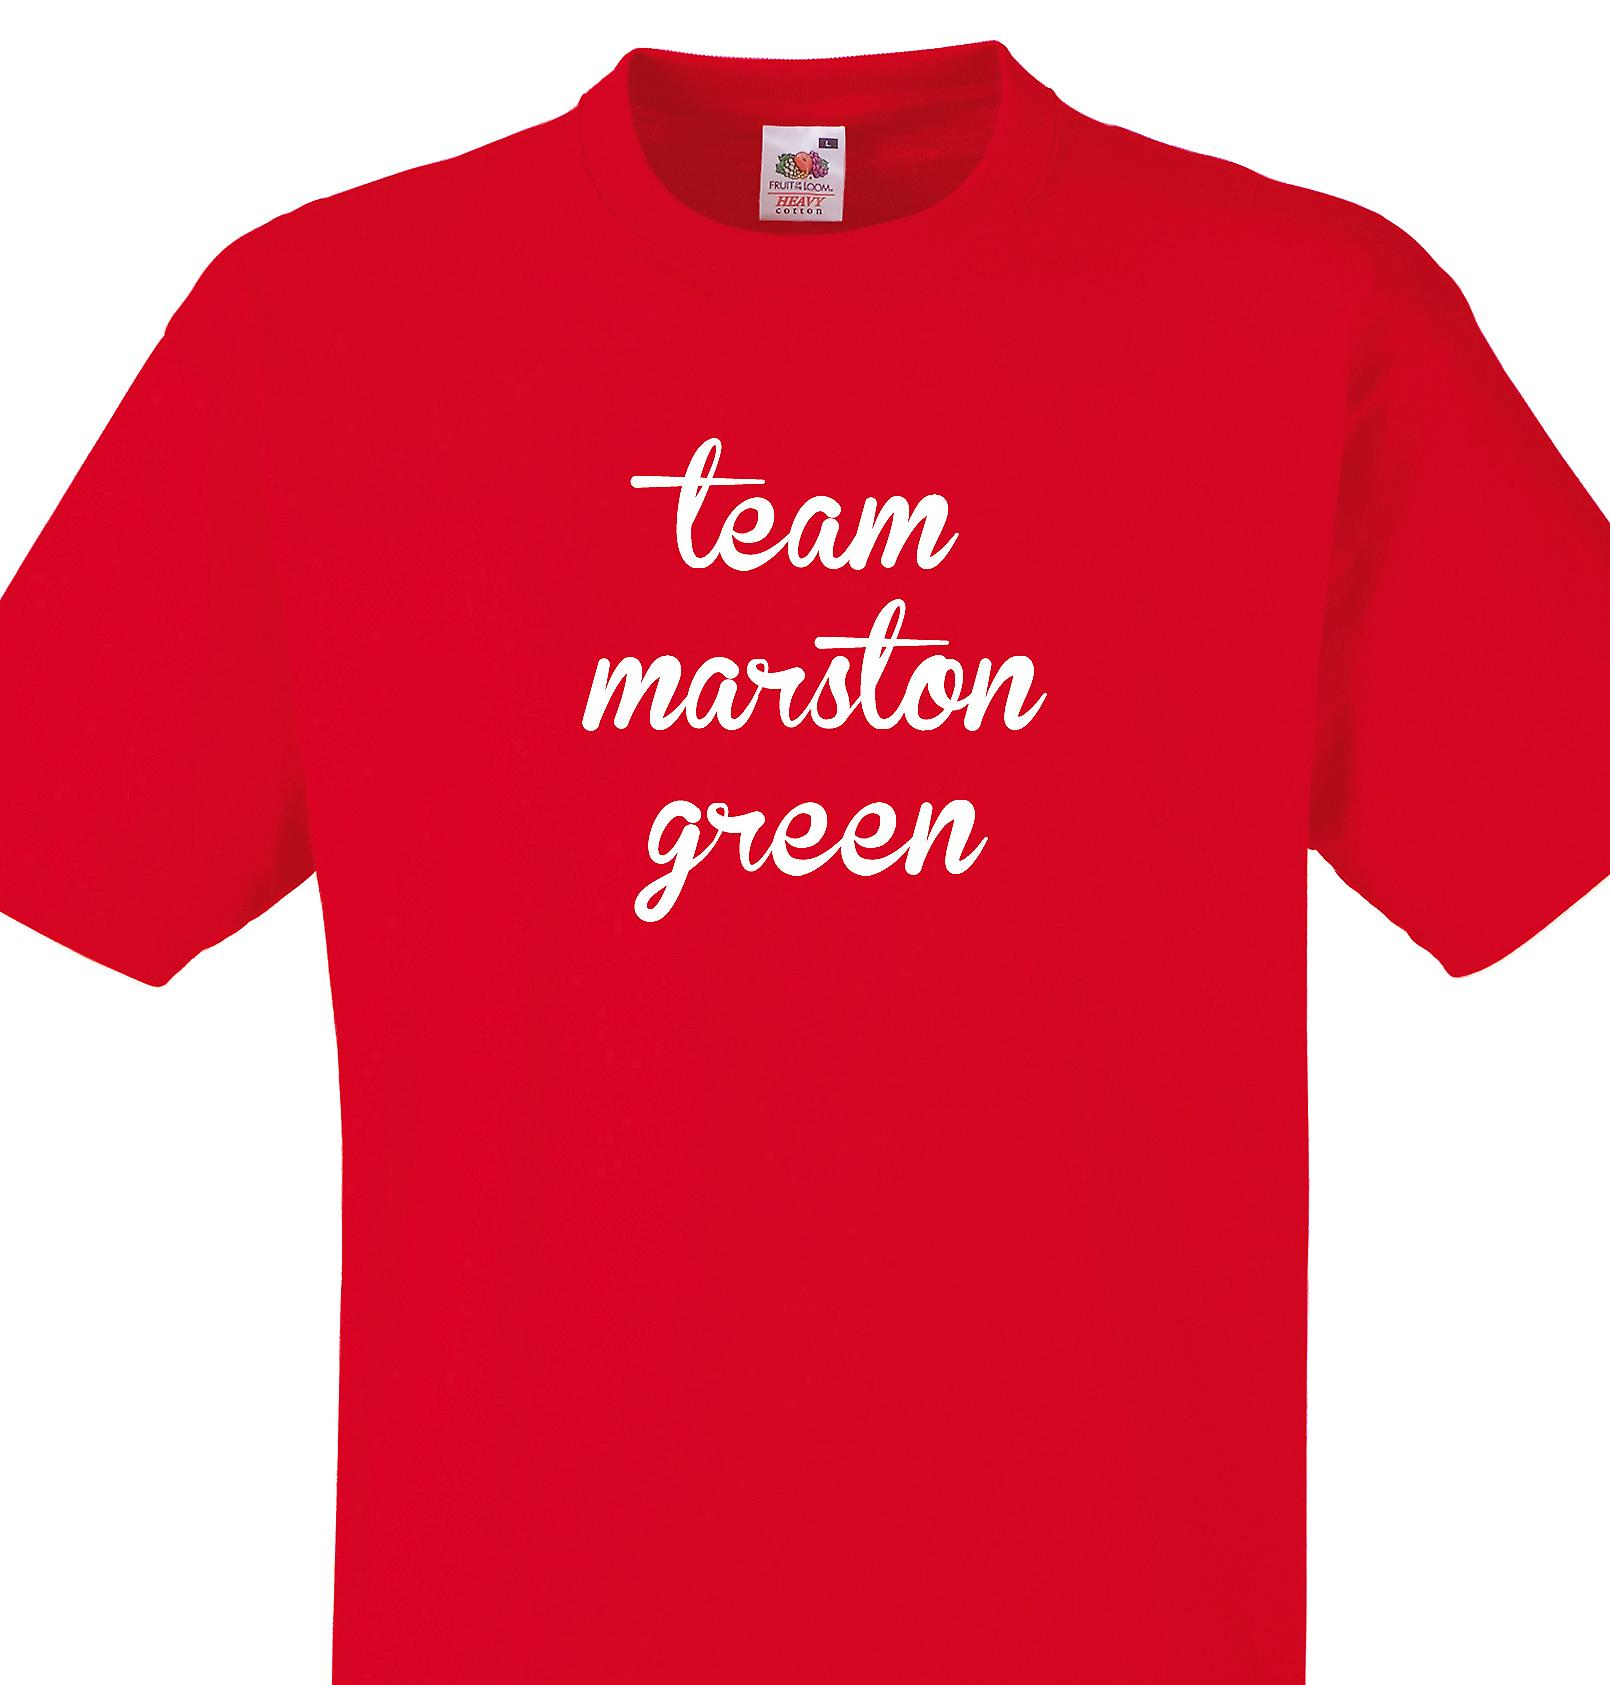 Team Marston green Red T shirt